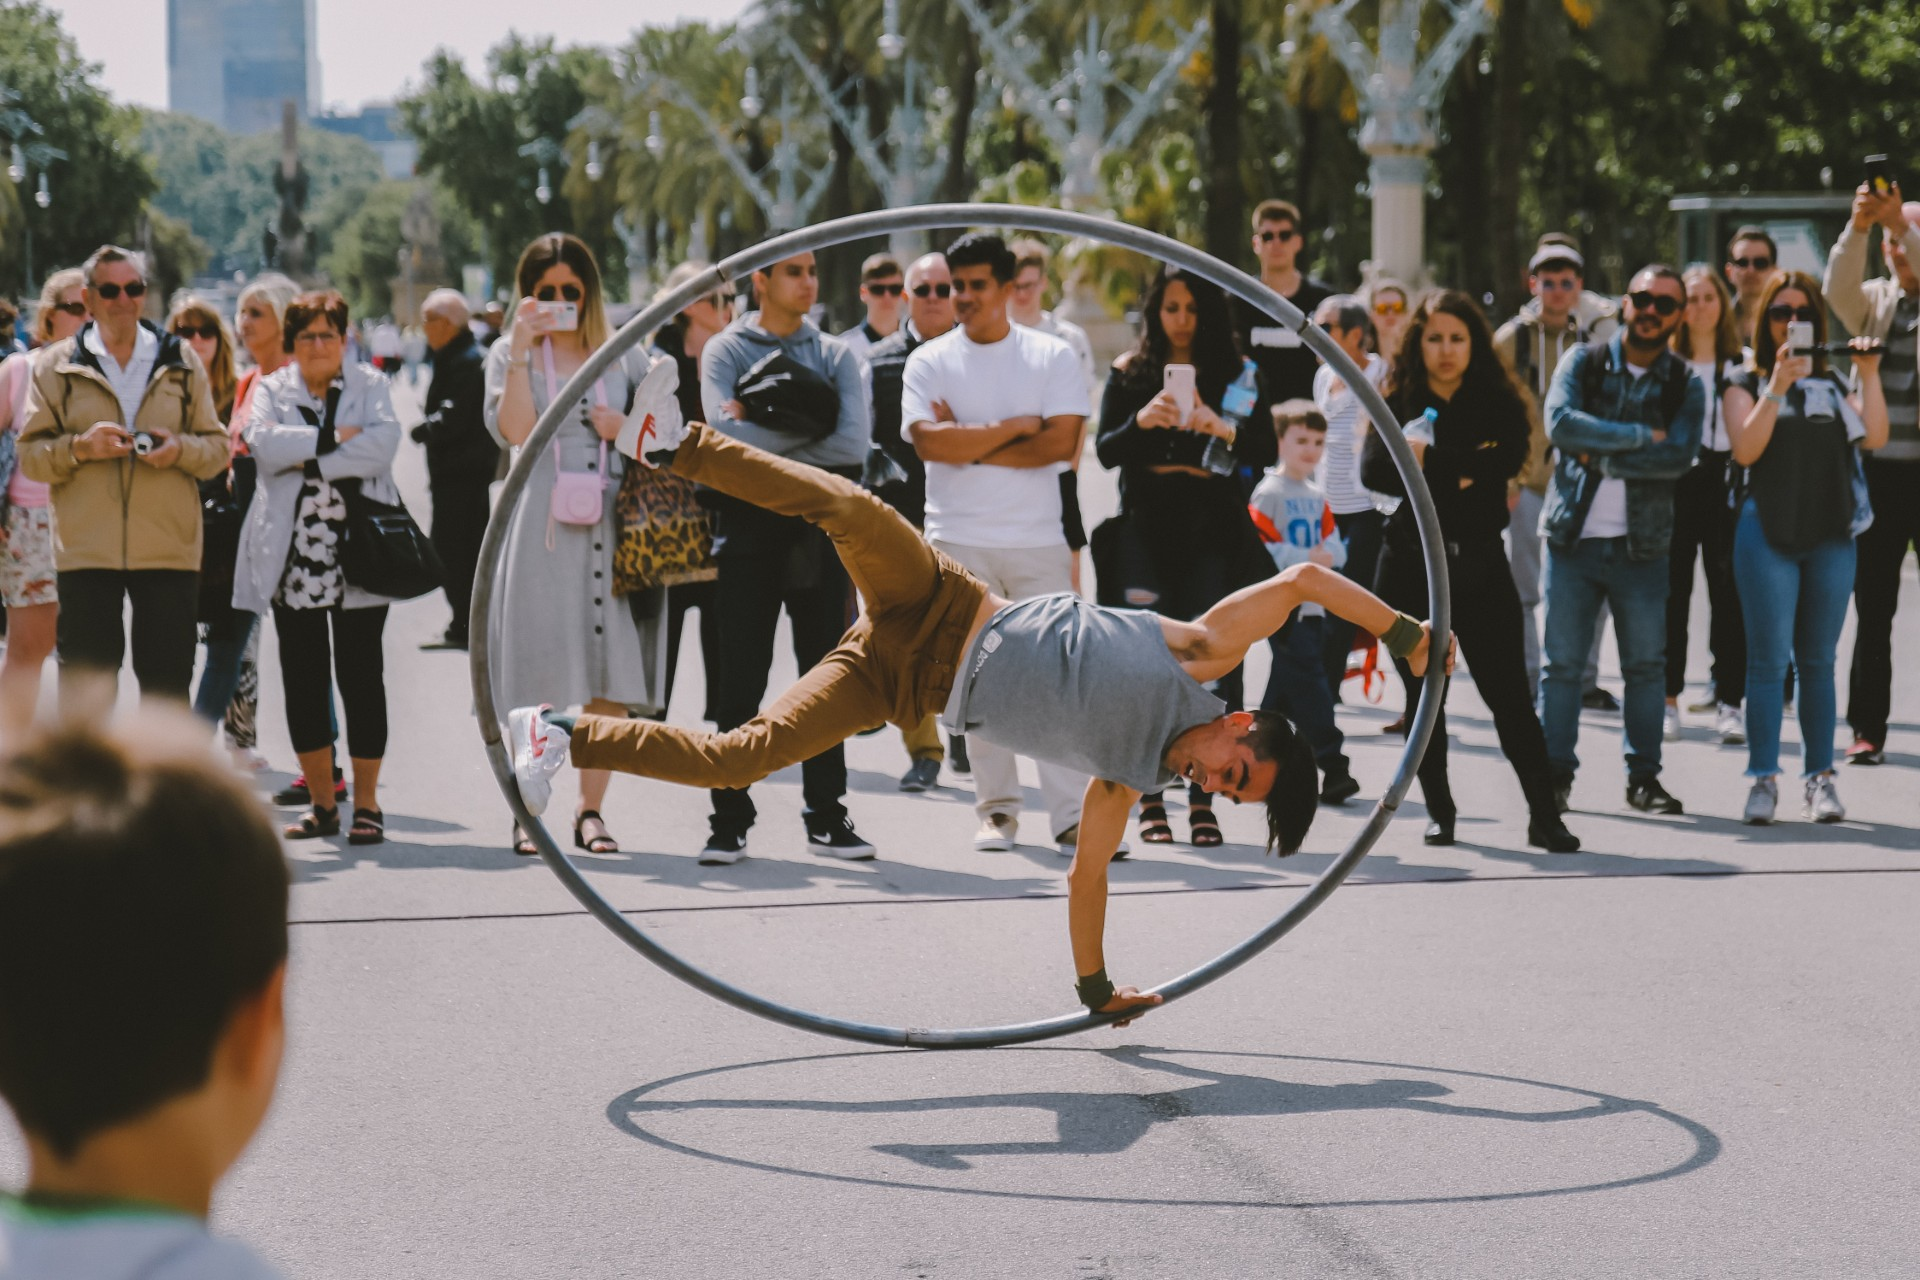 Street preformer in a hoop is watched by crowd